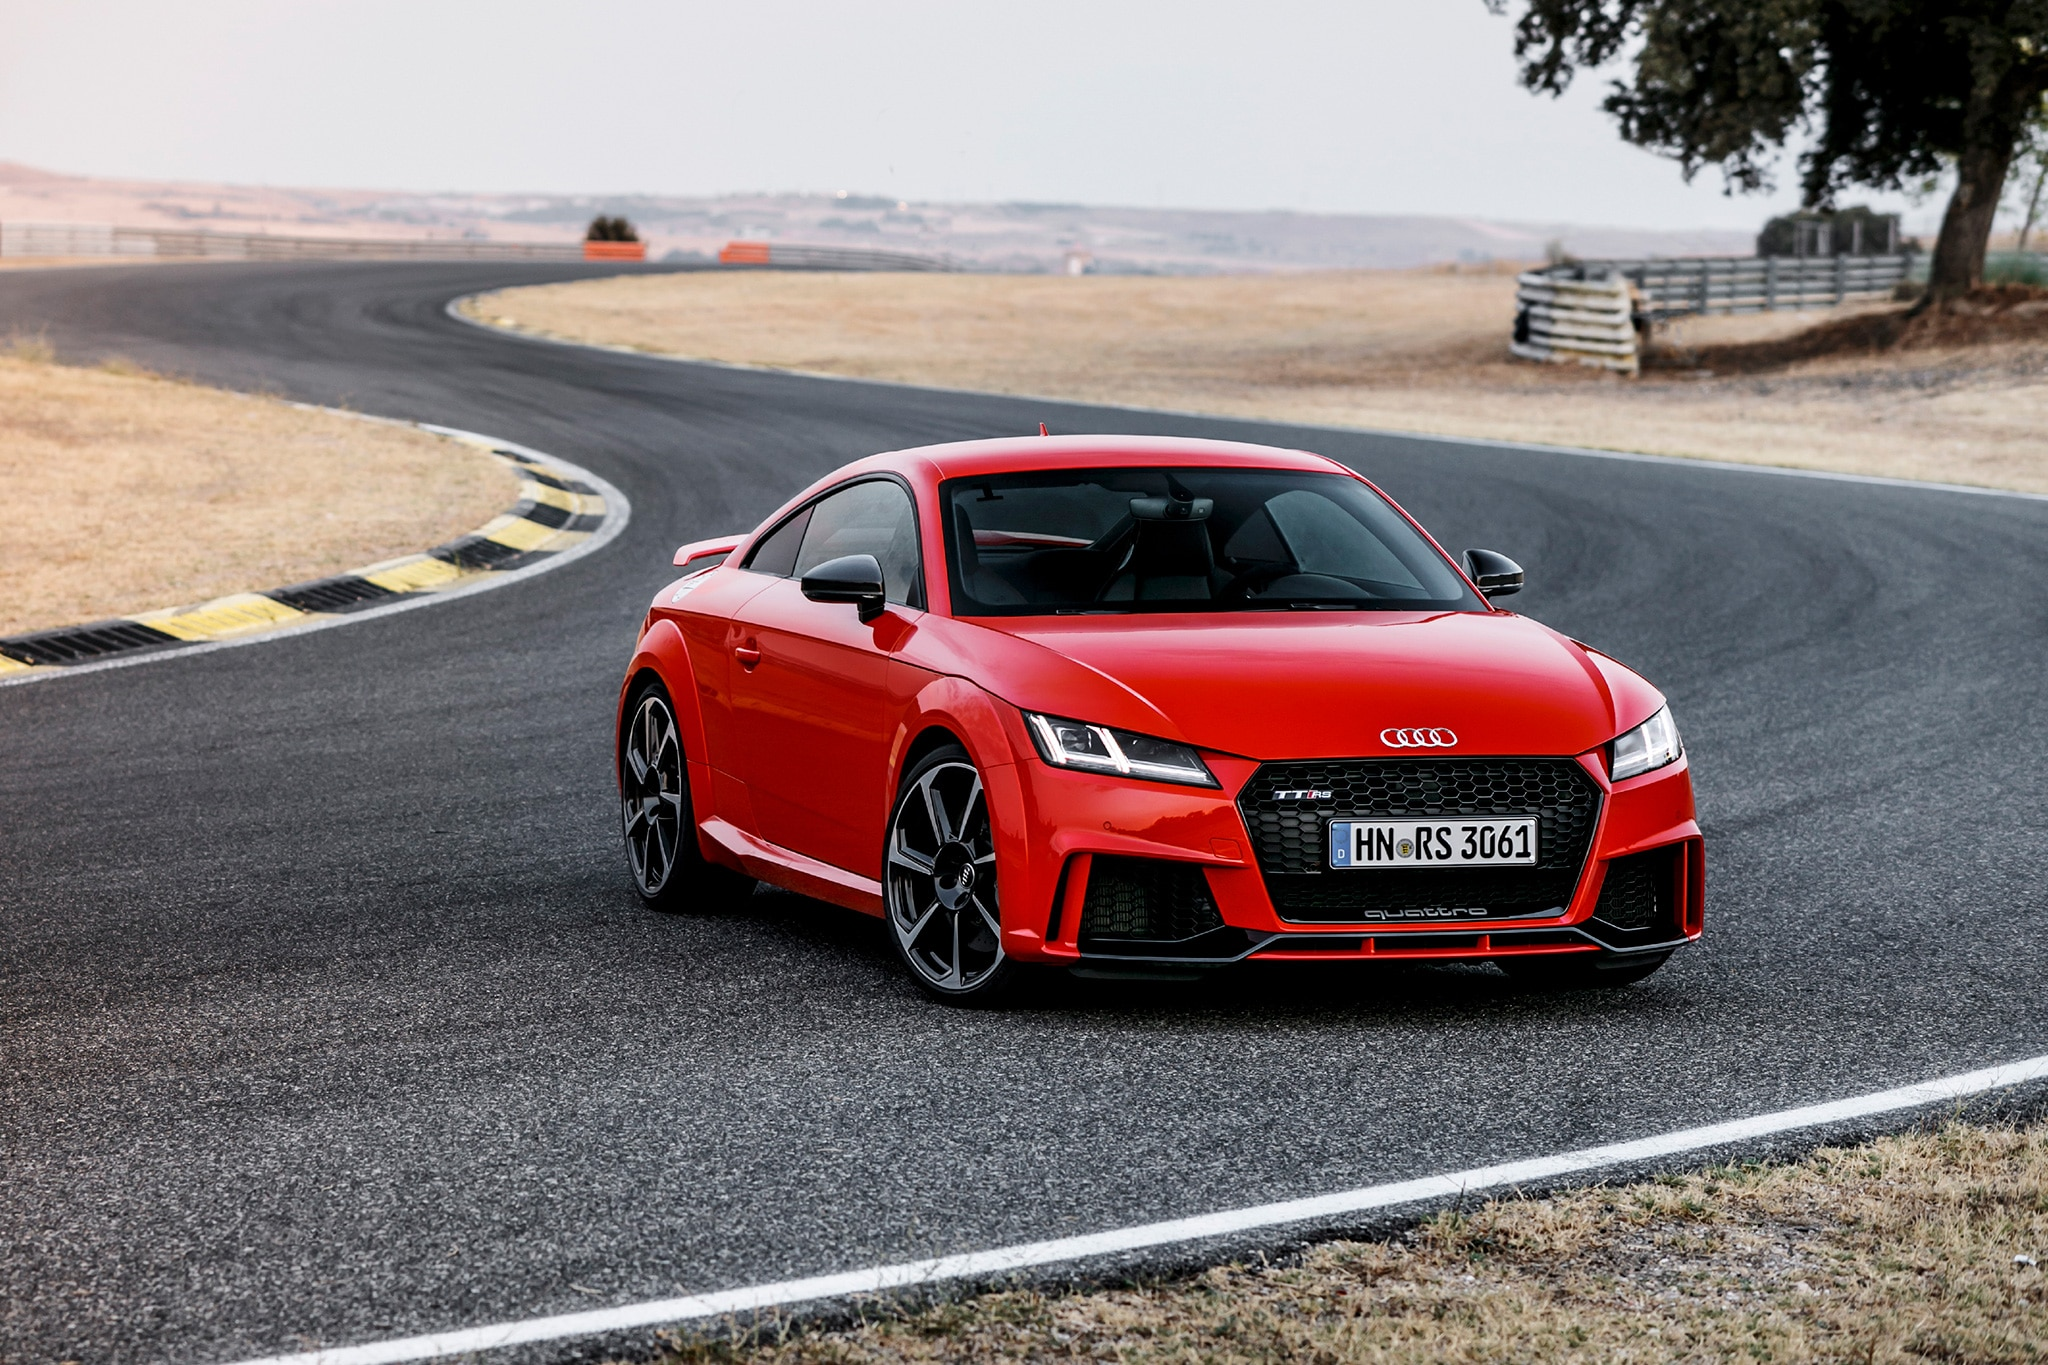 First Drive: 2018 Audi TT RS Coupe | Automobile Magazine